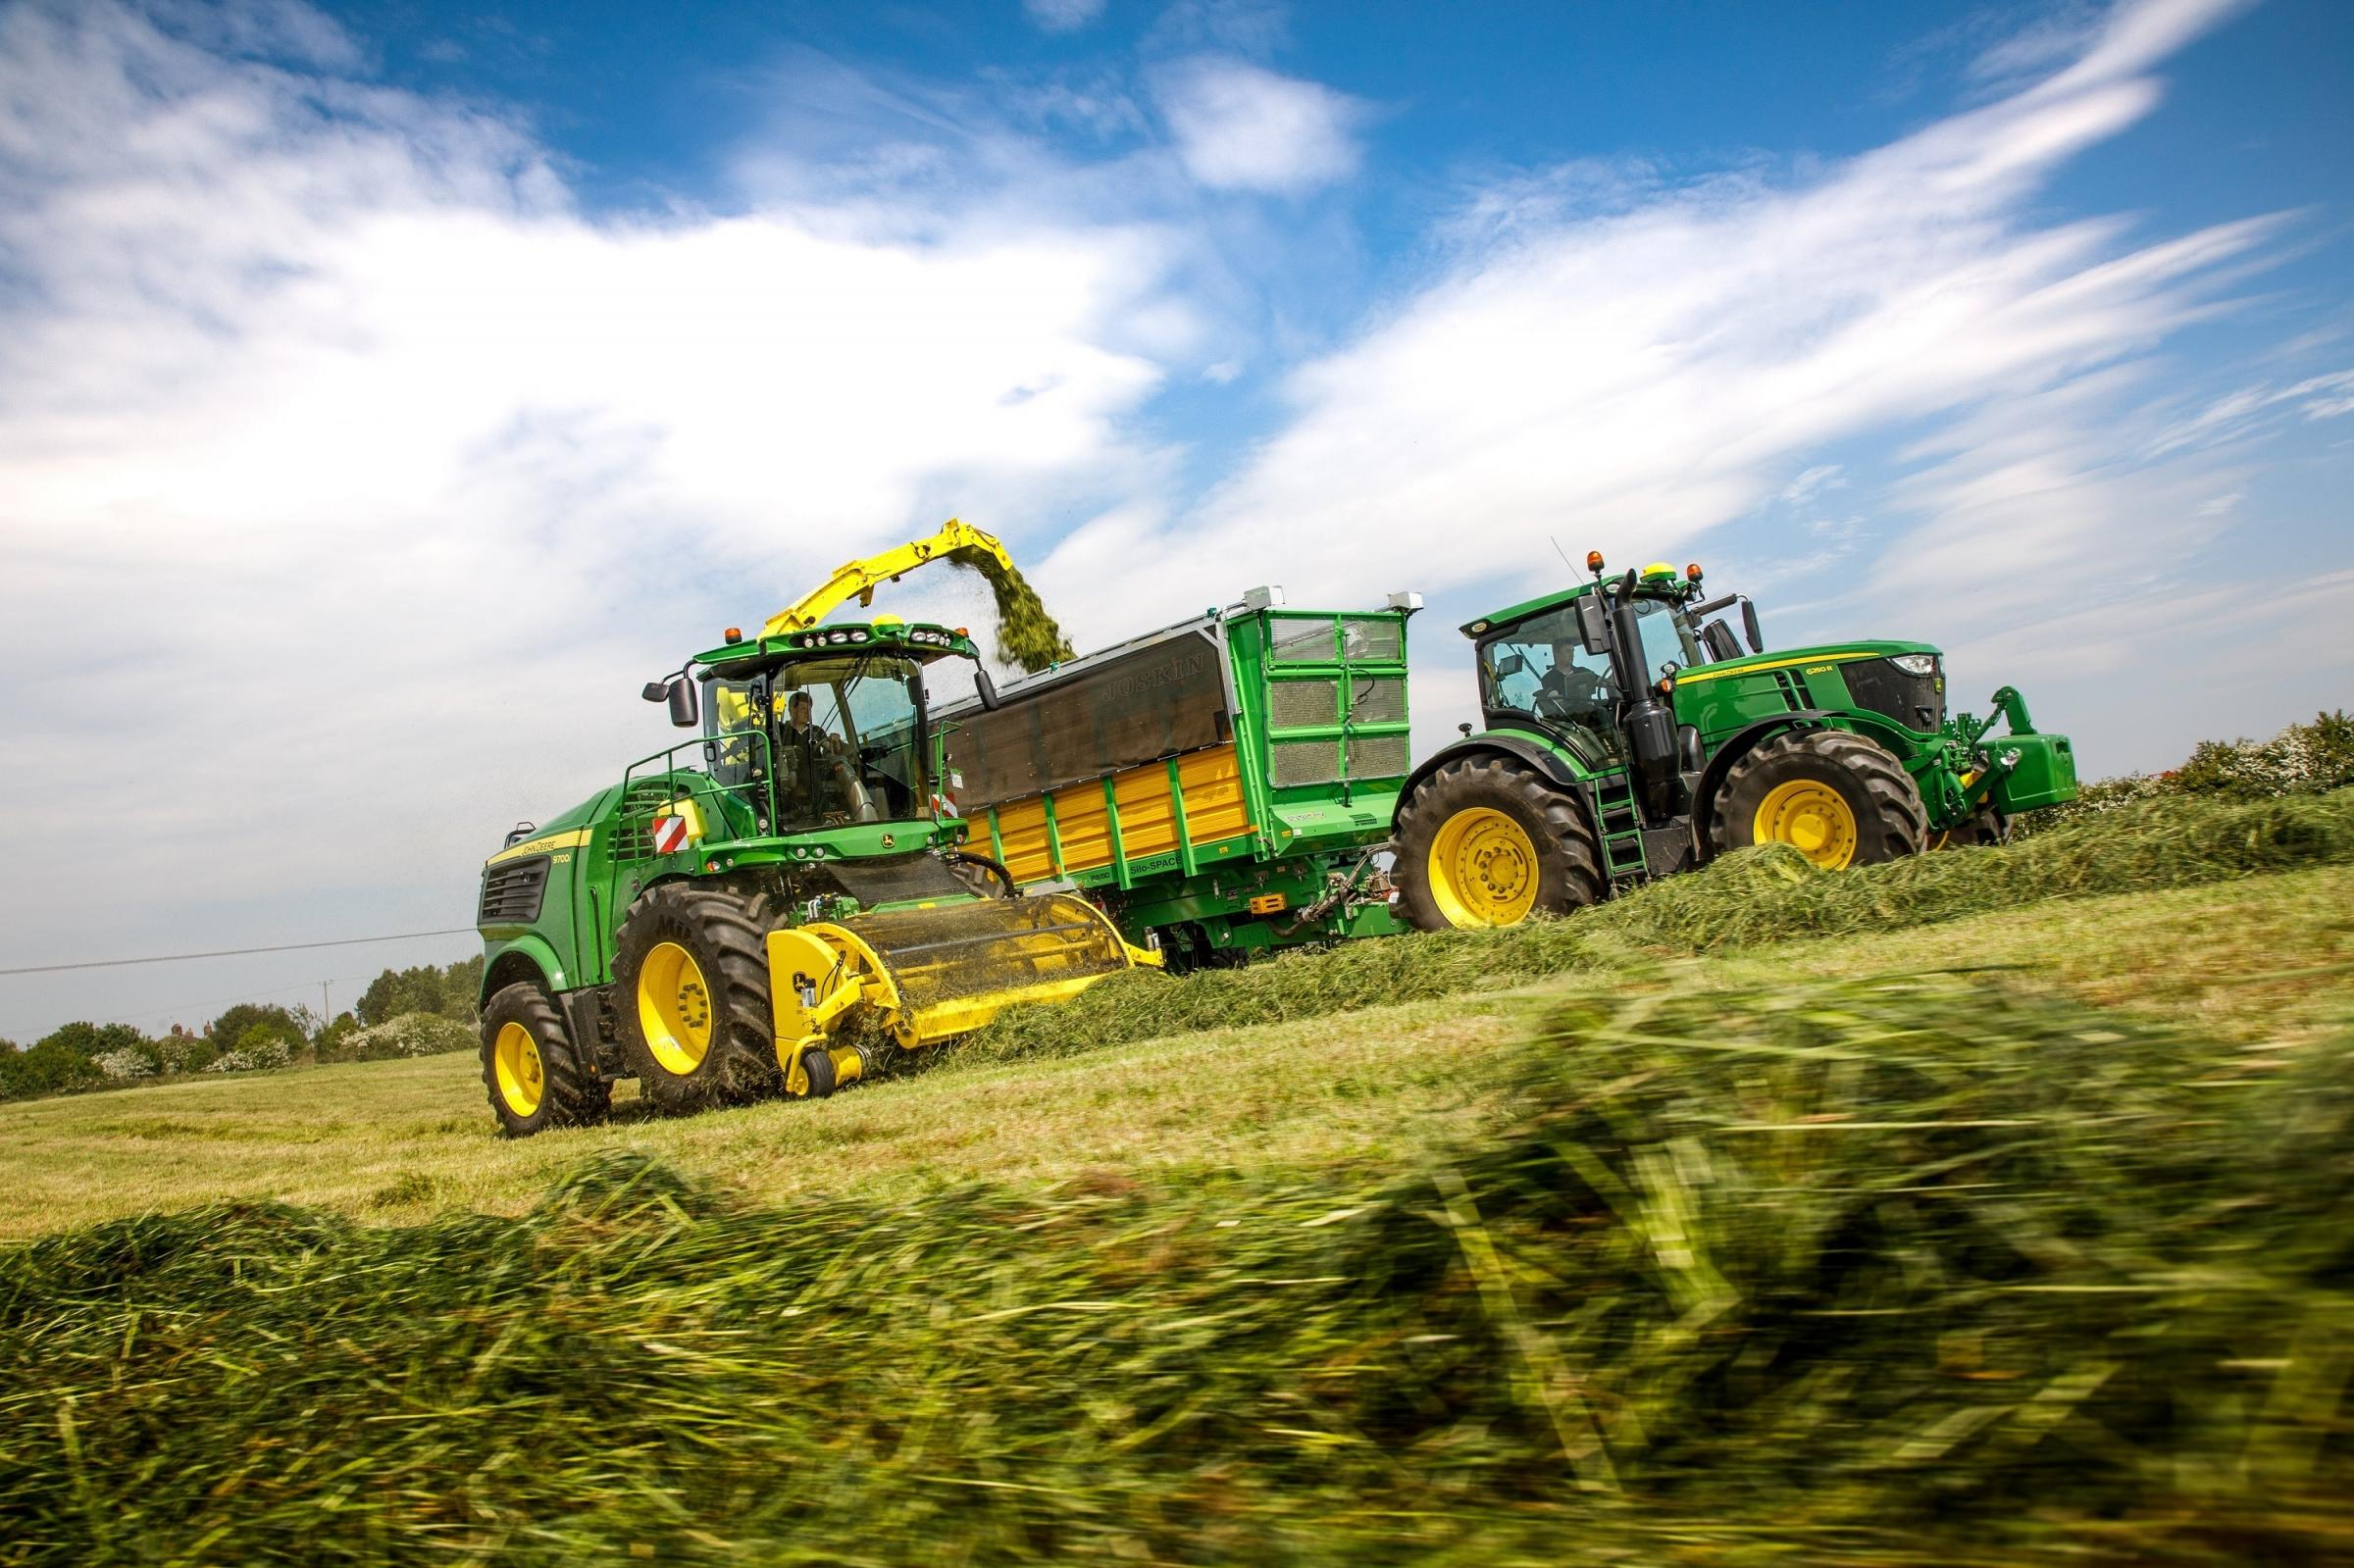 A new John Deere 9700i self-propelled forage harvester equipped with the 639 Premium 3m grass pick-up